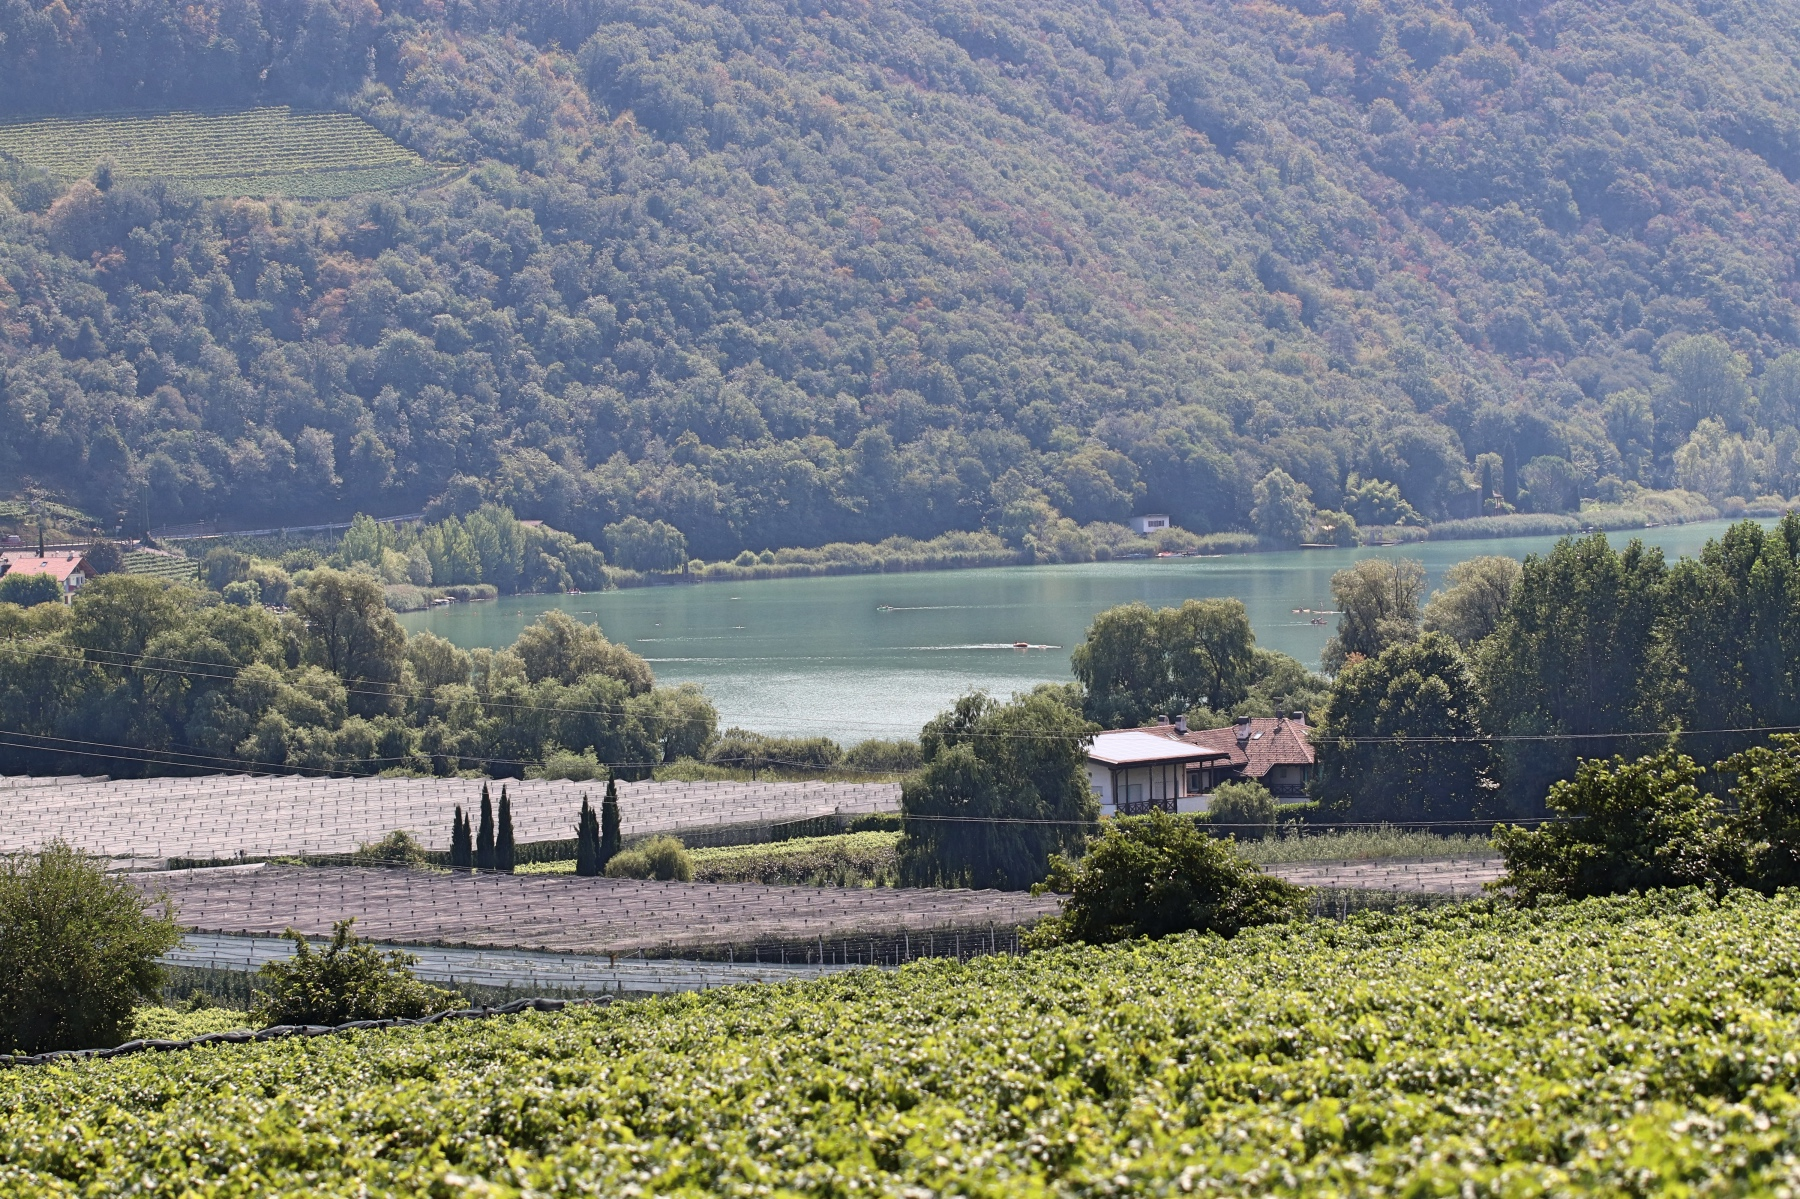 Weinregion Kaltern am See